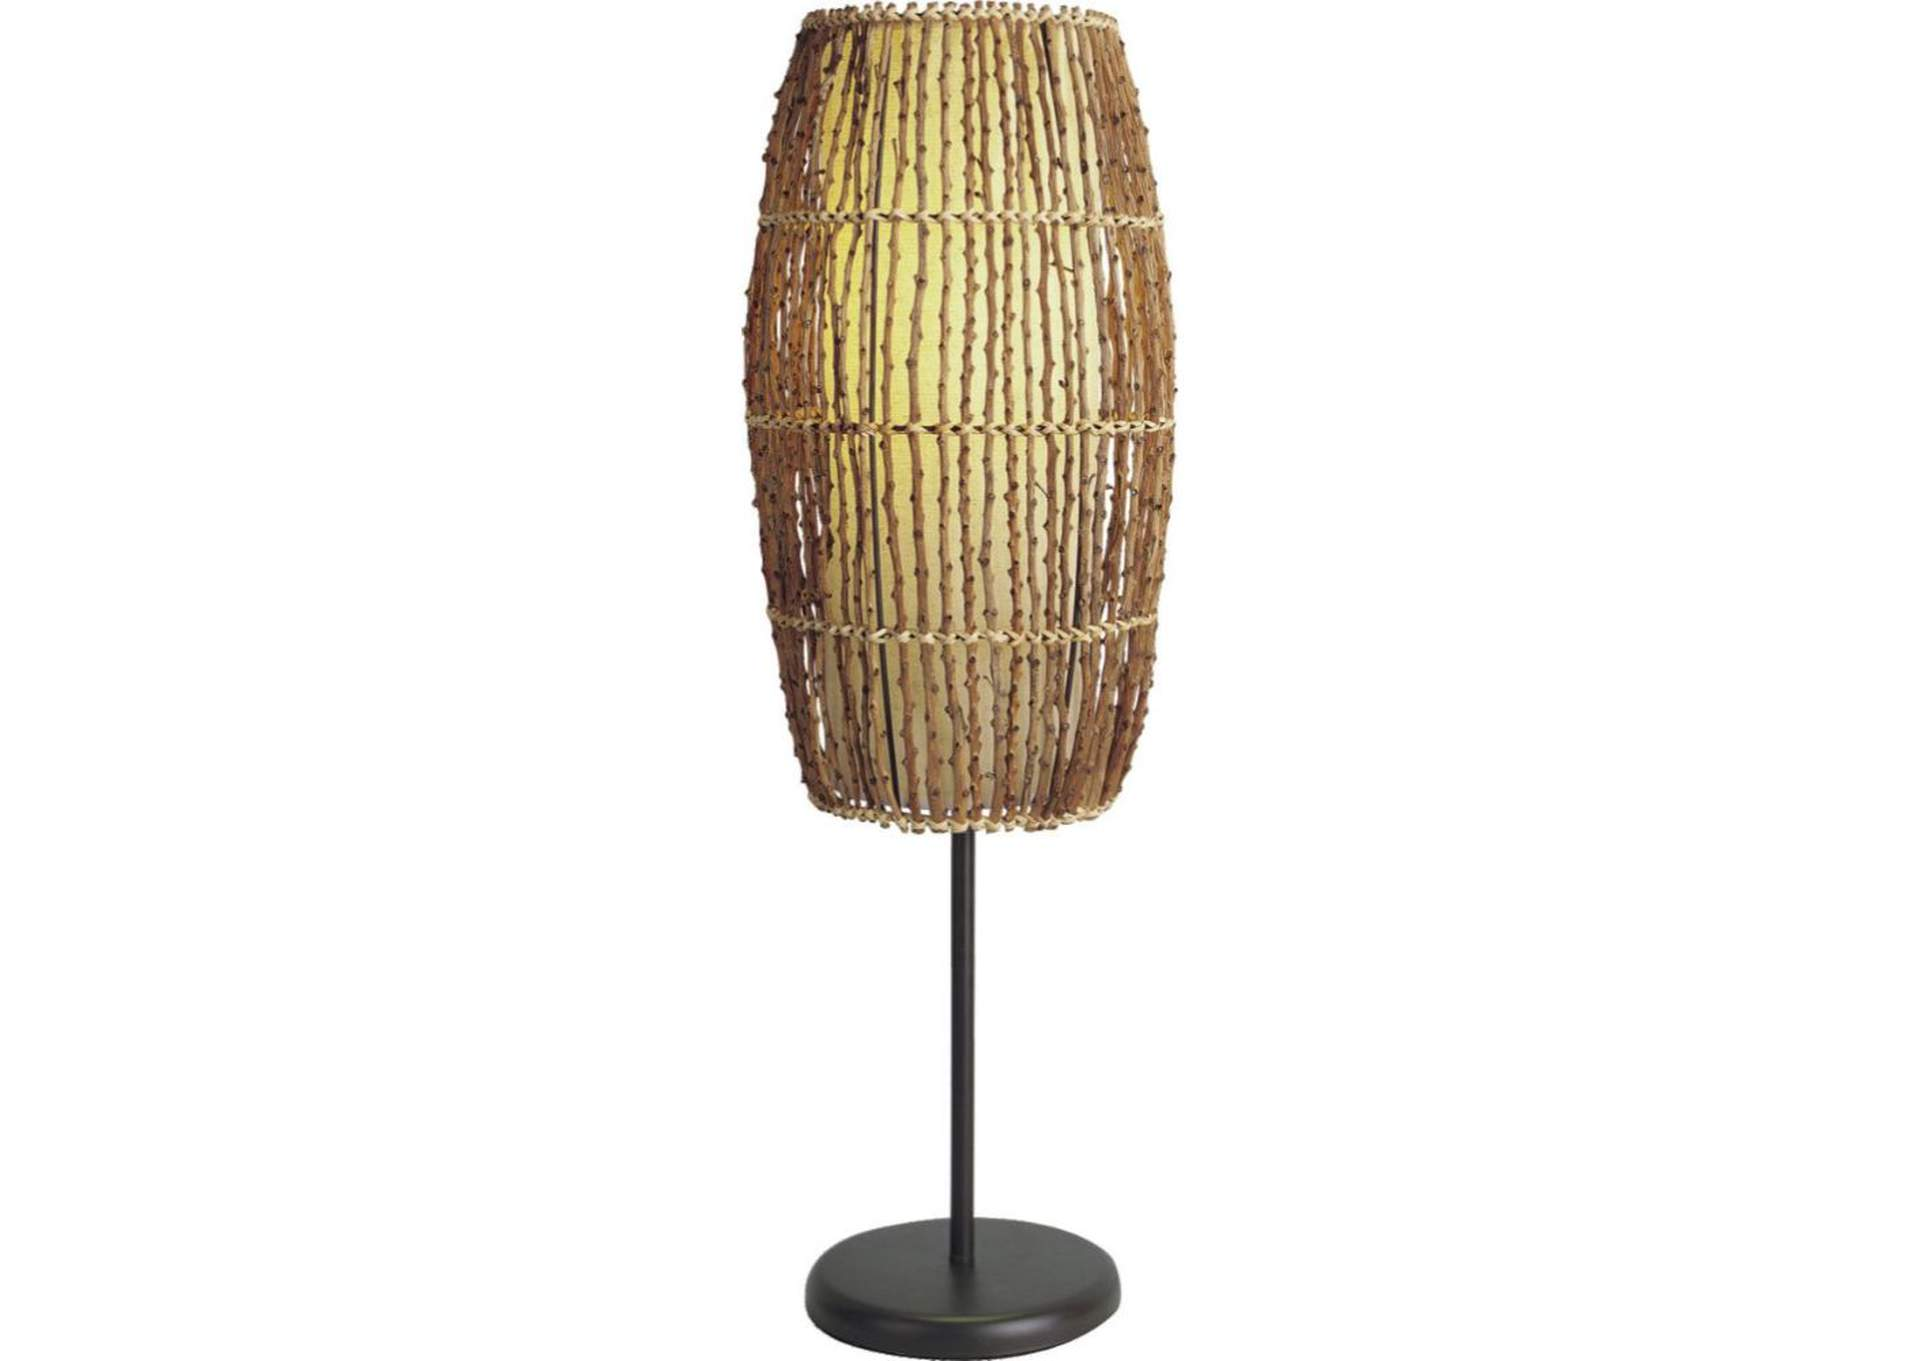 Bamboo Table Lamp,Acme